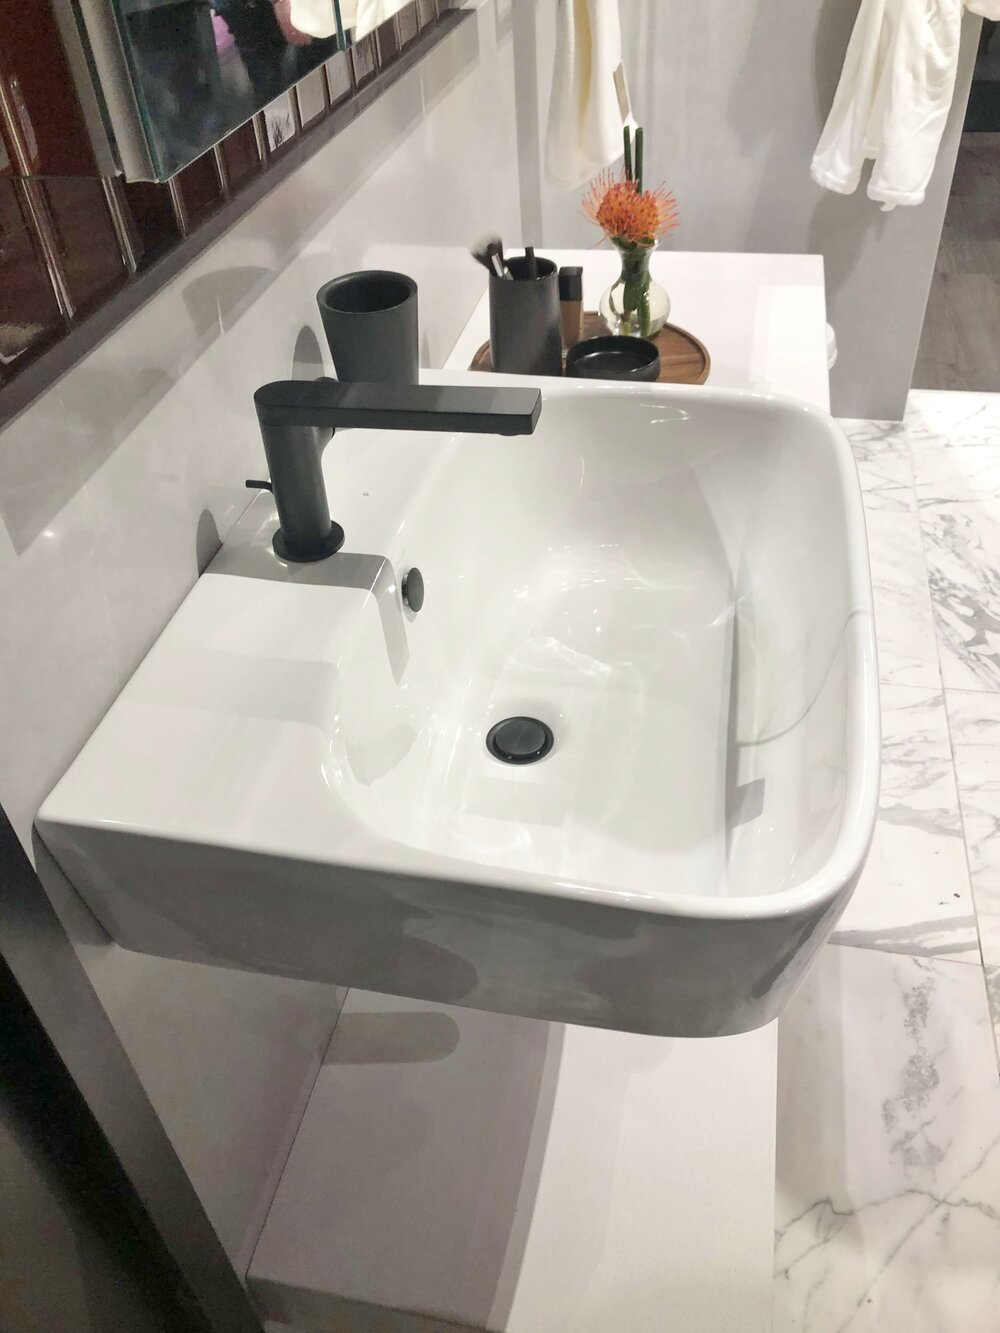 Nice to have some space to set items on the decked area of this wall mount sink.